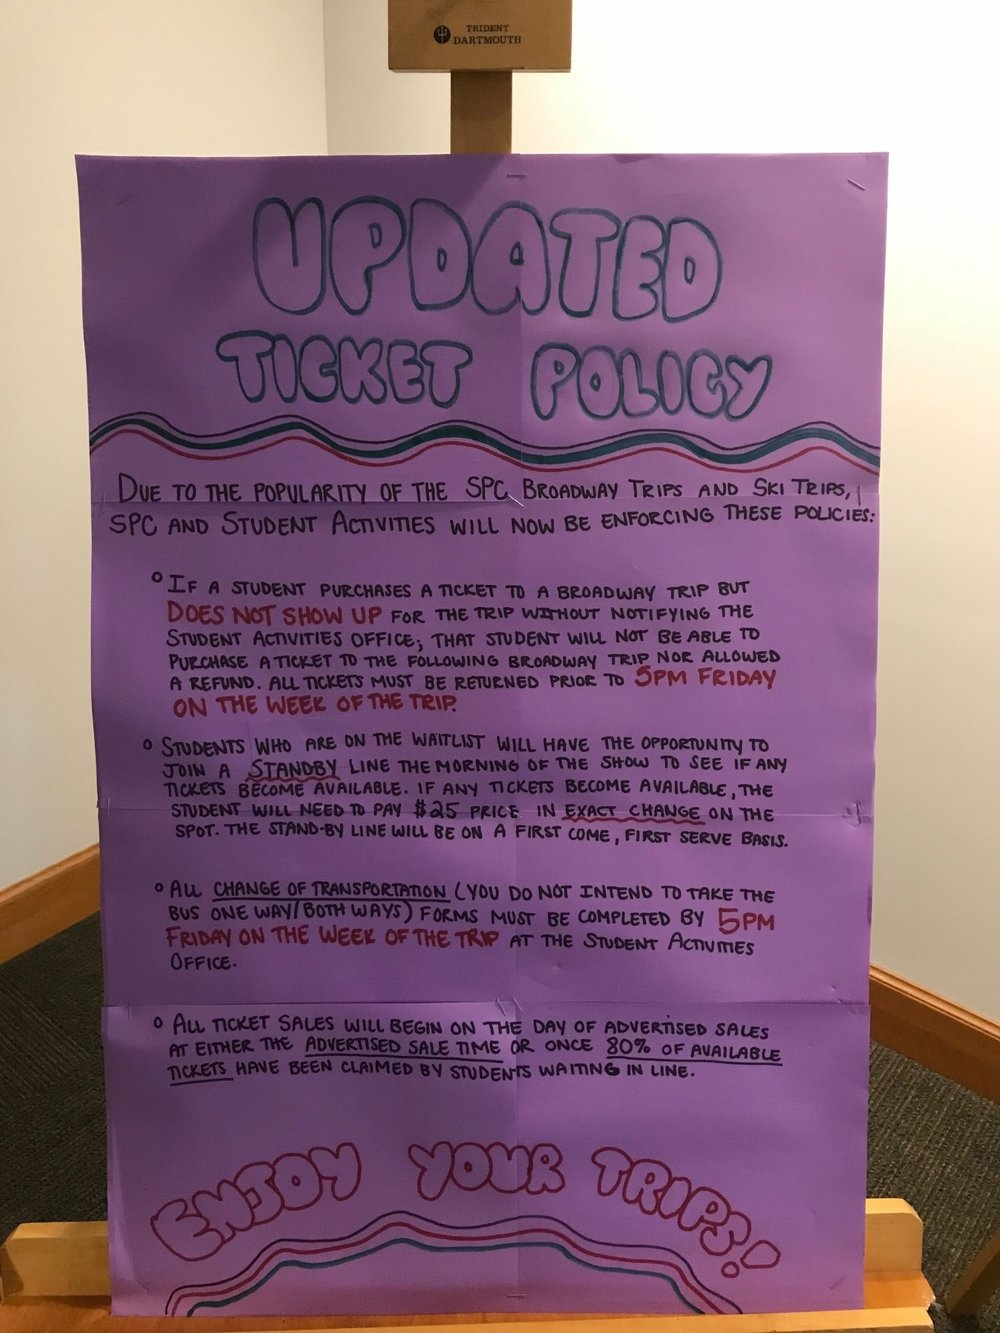 A poster with the updated ticket policy hangs in the Student Center. Photo by Amanda Guy.